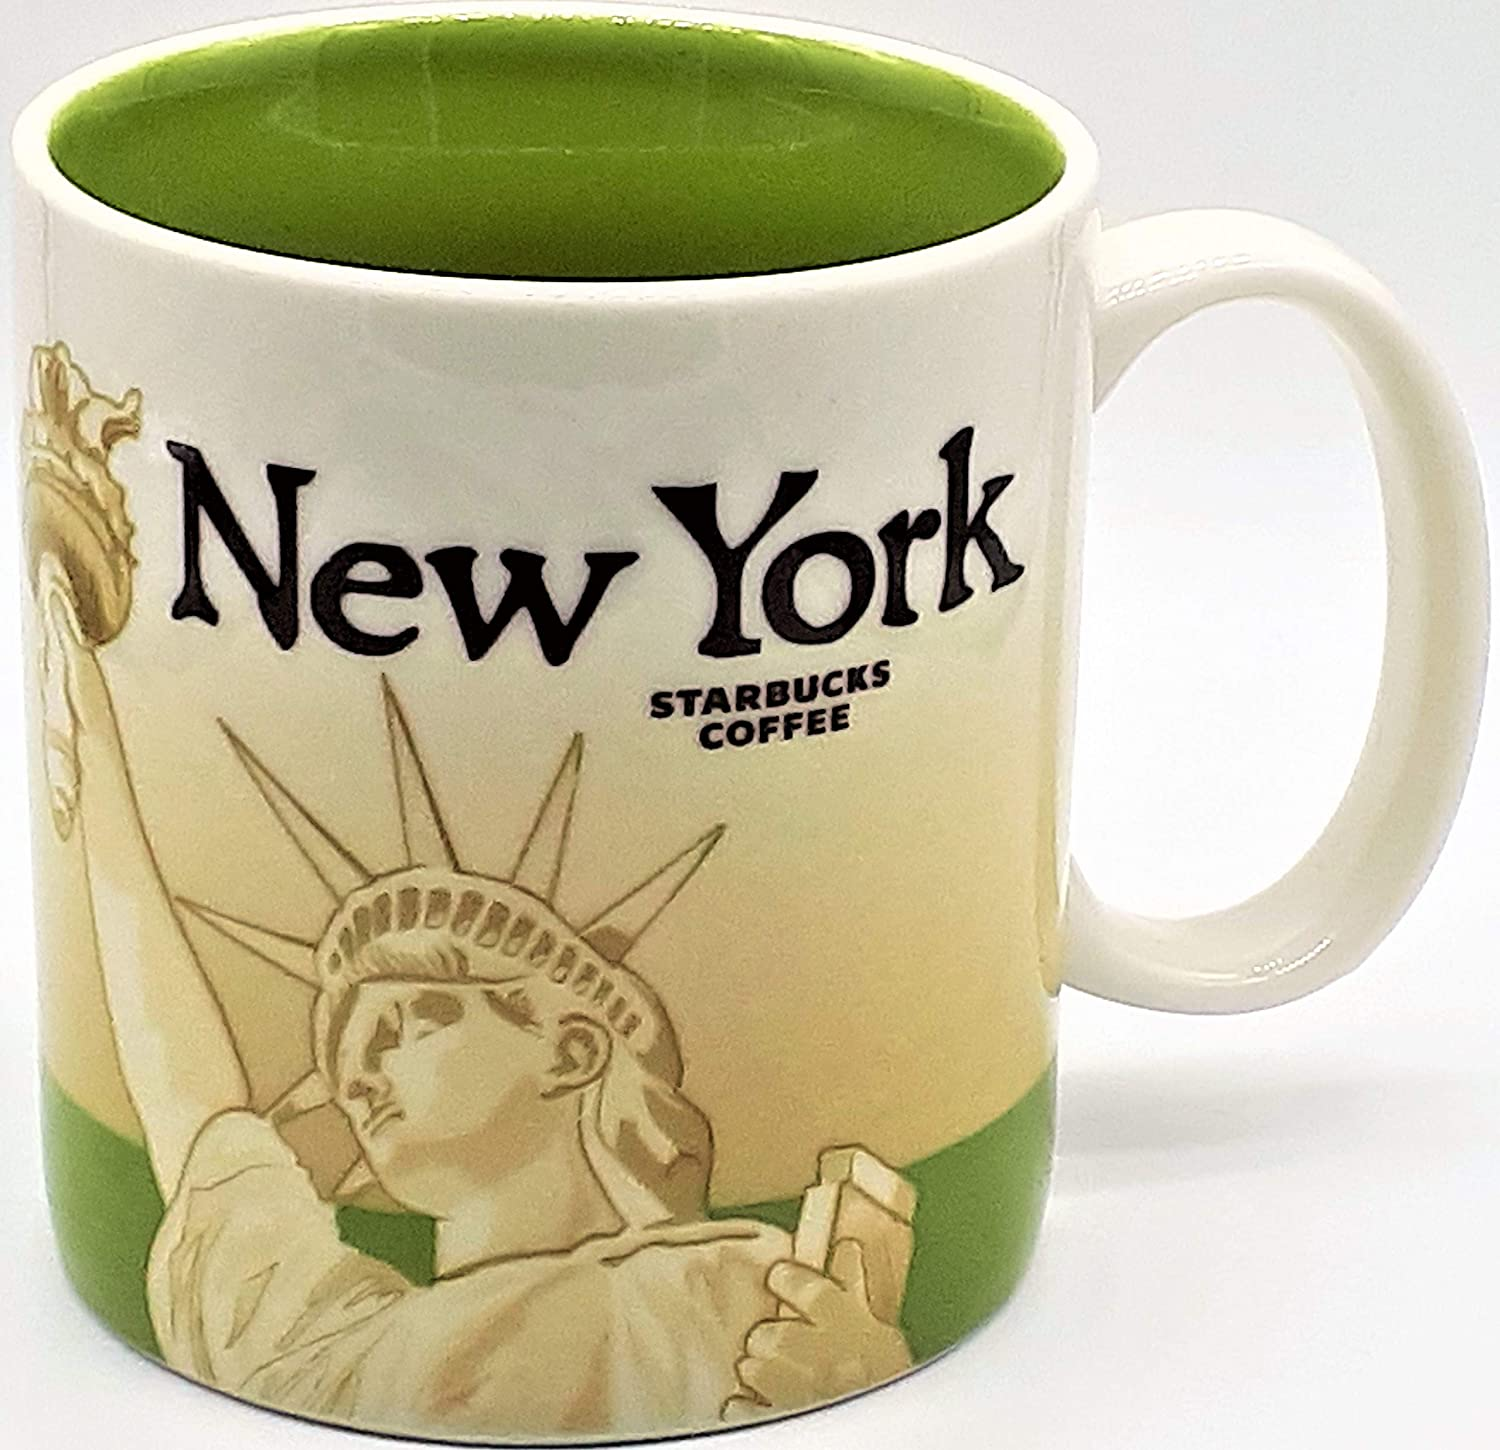 Coffee Cups of New York City | Best coffee shop, Coffee cups